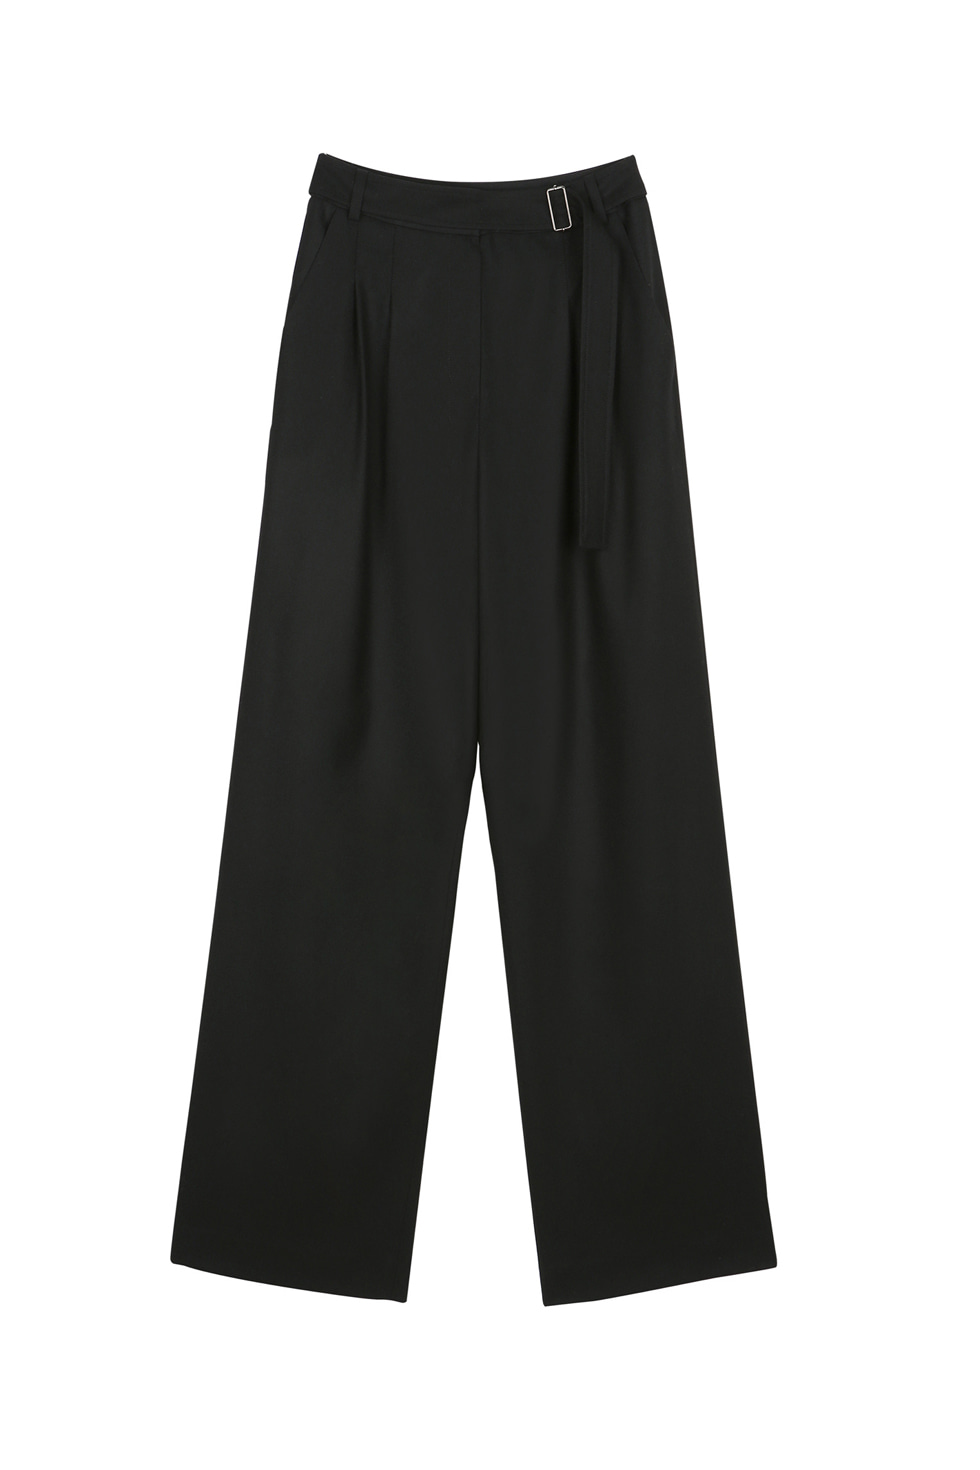 BELTED WOOL PANTS - BLACK